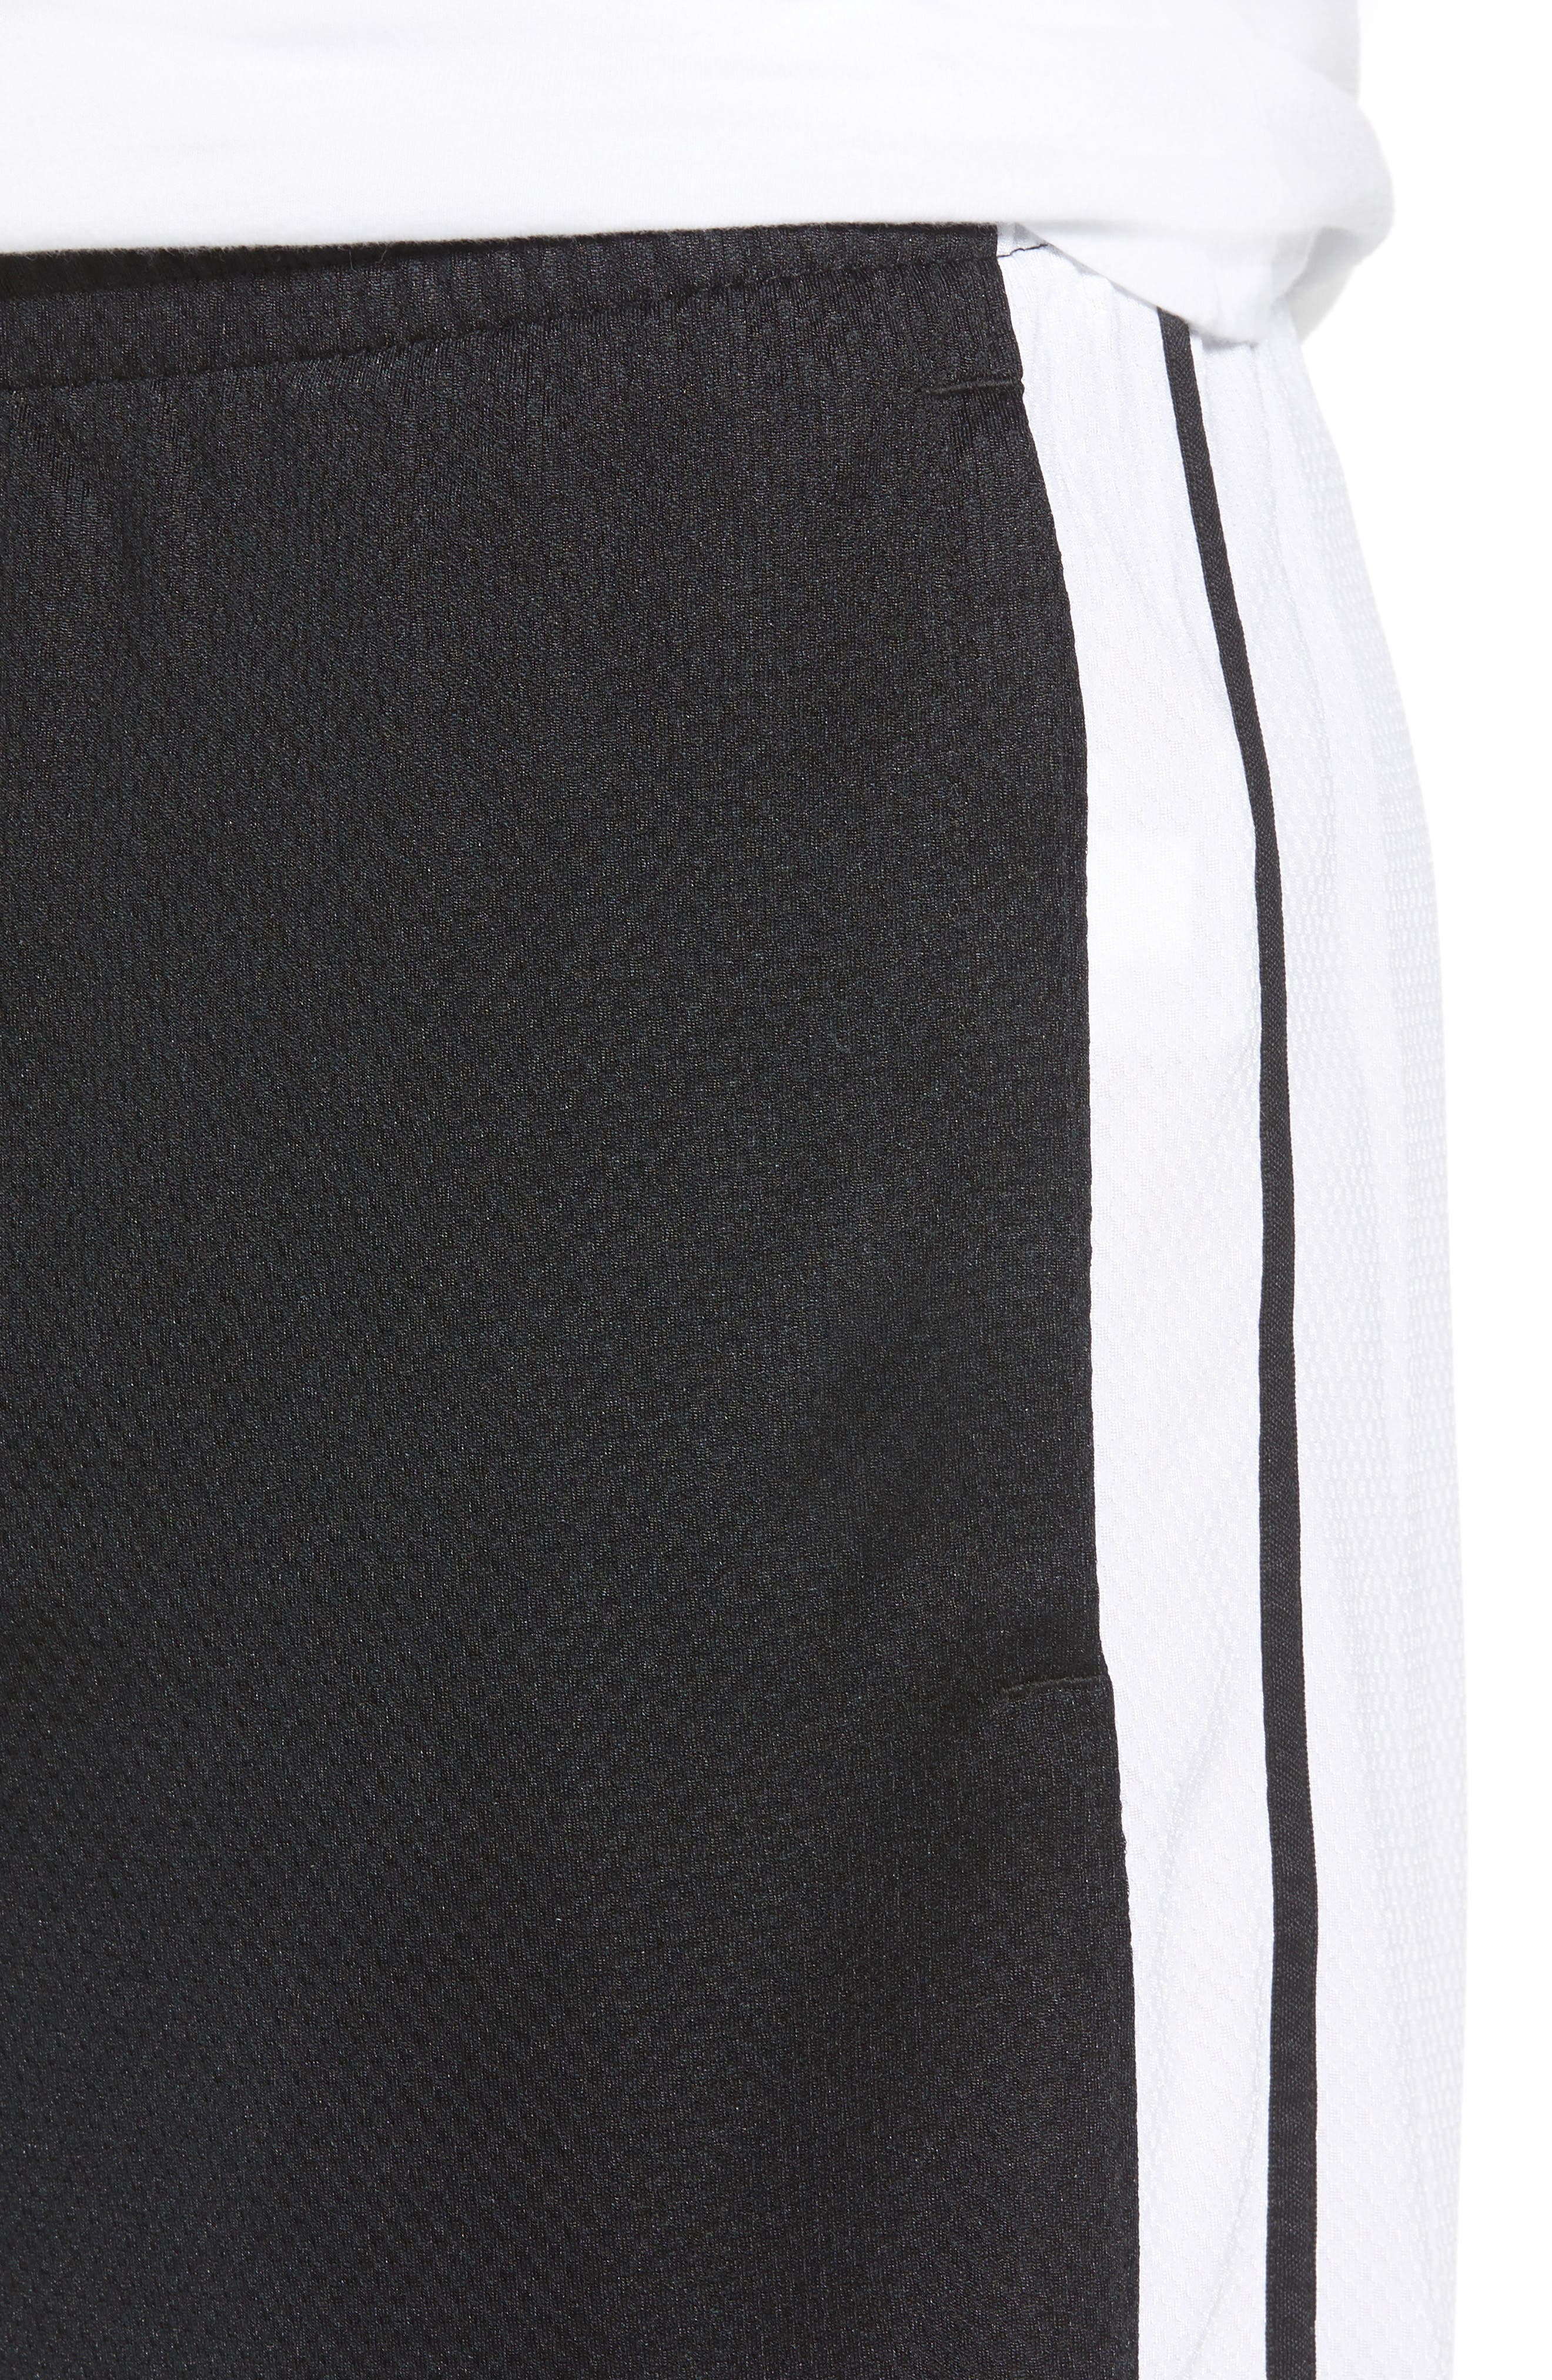 Rise Shorts,                             Alternate thumbnail 4, color,                             WHITE/ BLACK/ BLACK